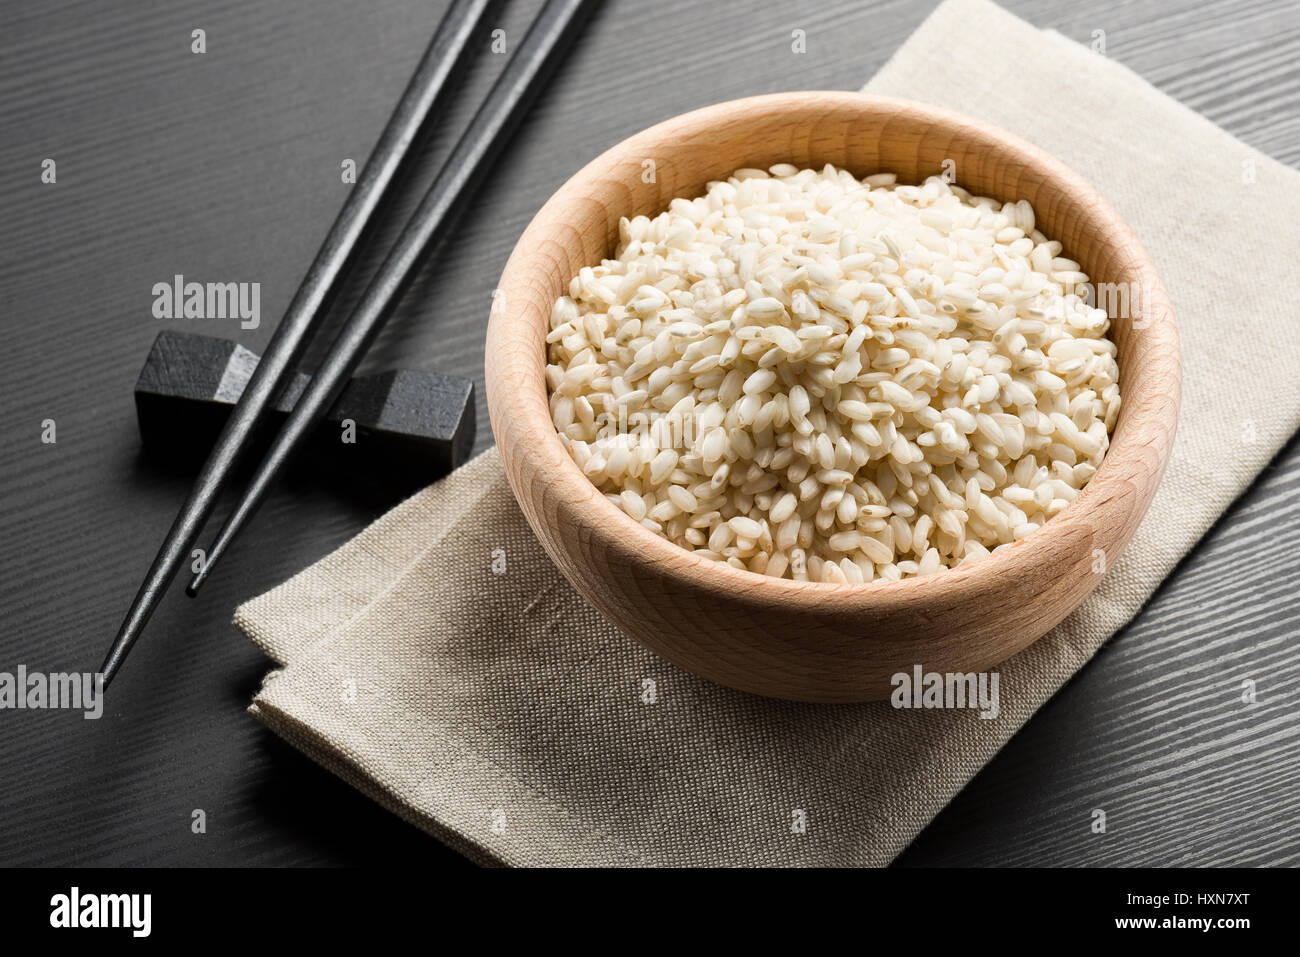 wooden bowl with rice and japanese chopsticks on black wooden table - Stock Image